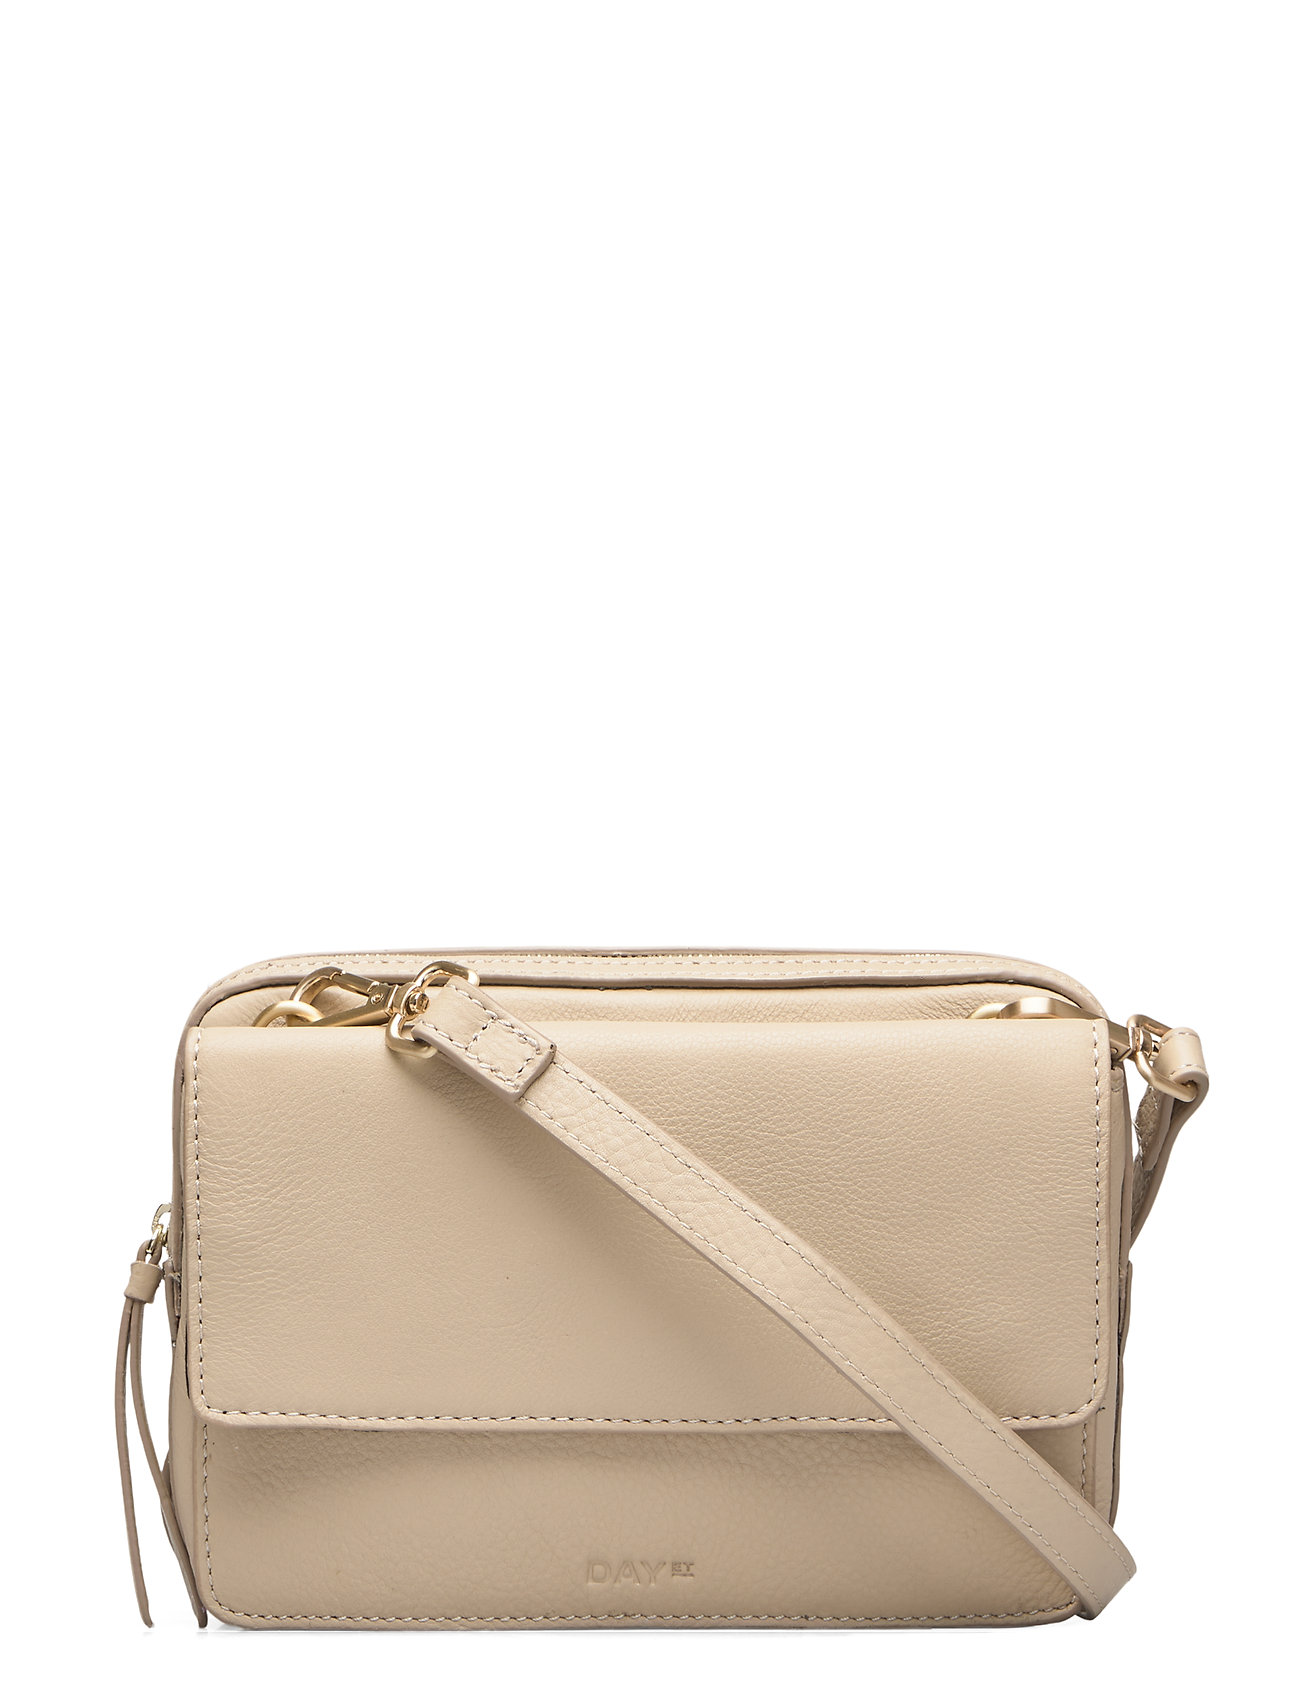 Image of Day Amsterdam Clutch Cb Bags Small Shoulder Bags - Crossbody Bags Beige DAY Et (3452180429)